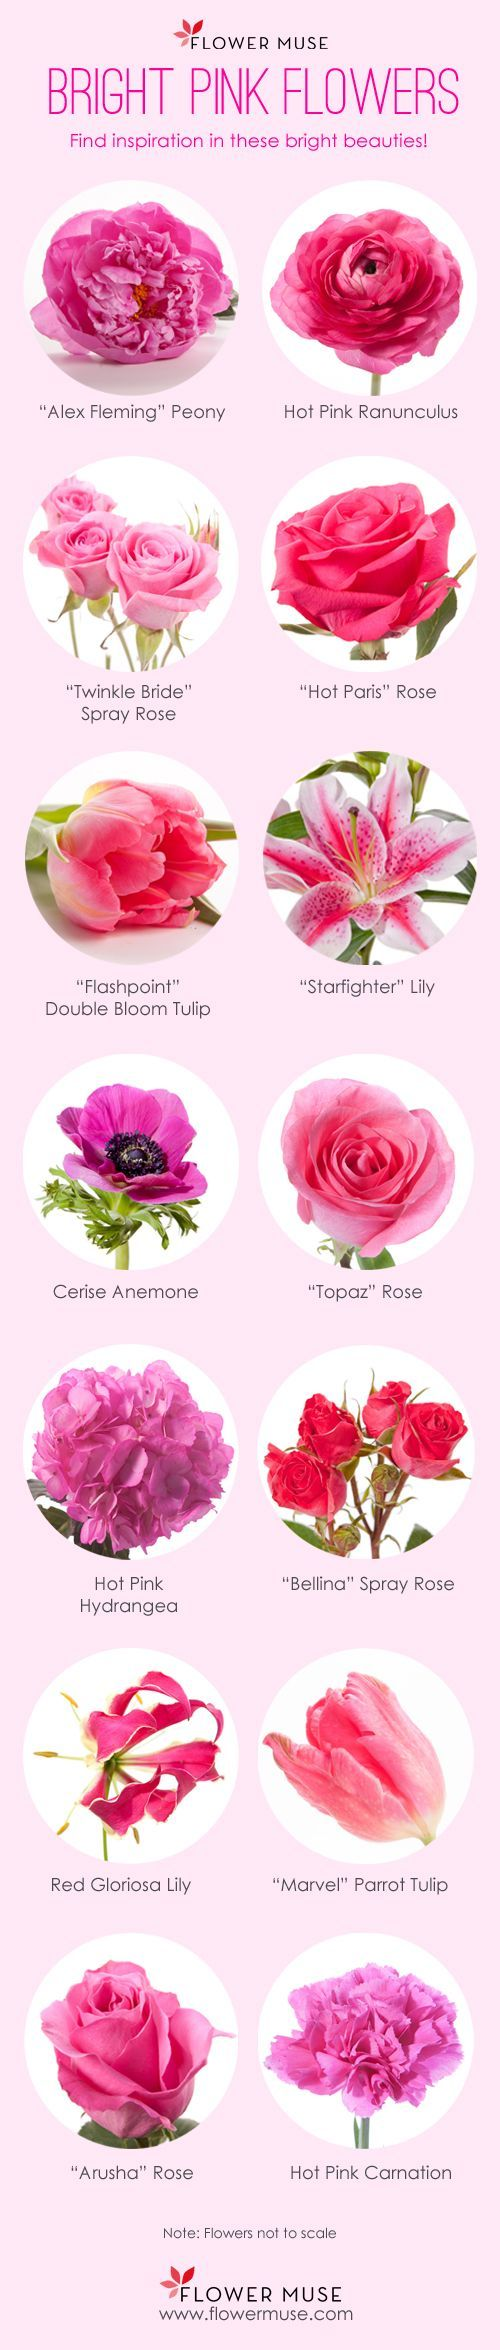 Choosing The Best Pink Flowers For Your Lovely Garden Love